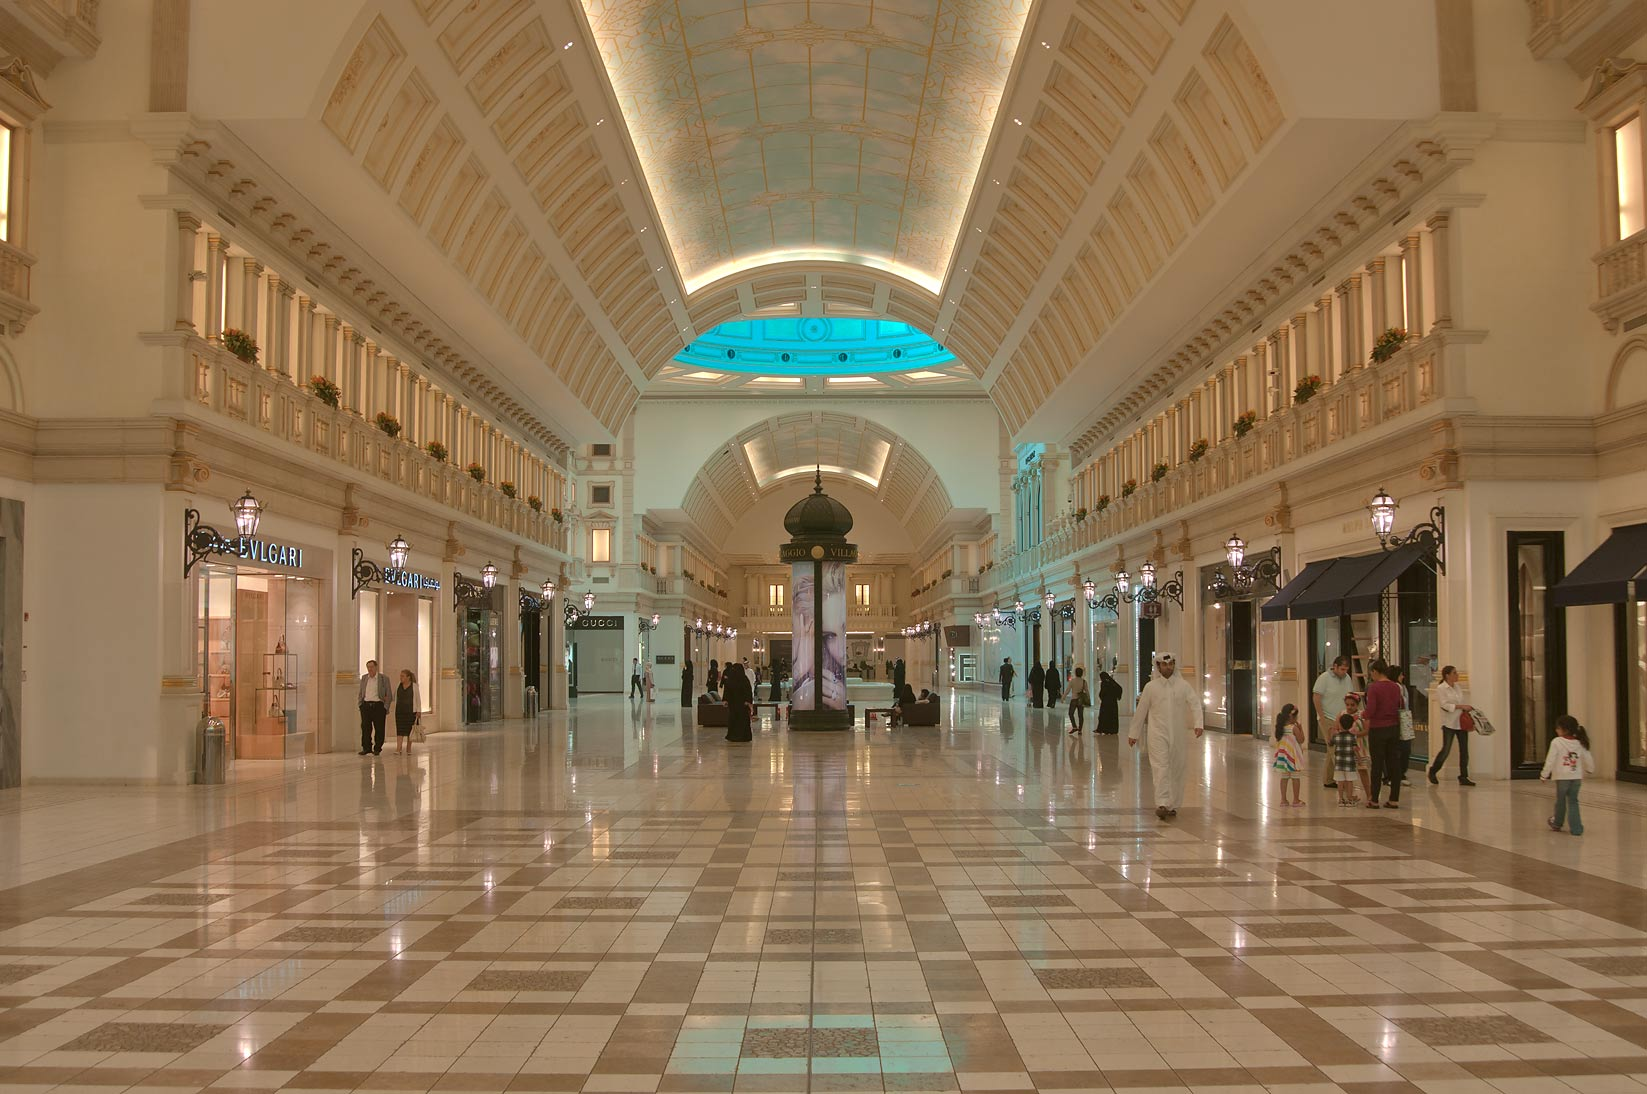 A hall in Villagio Shopping Mall, Aspire Zone. Doha, Qatar